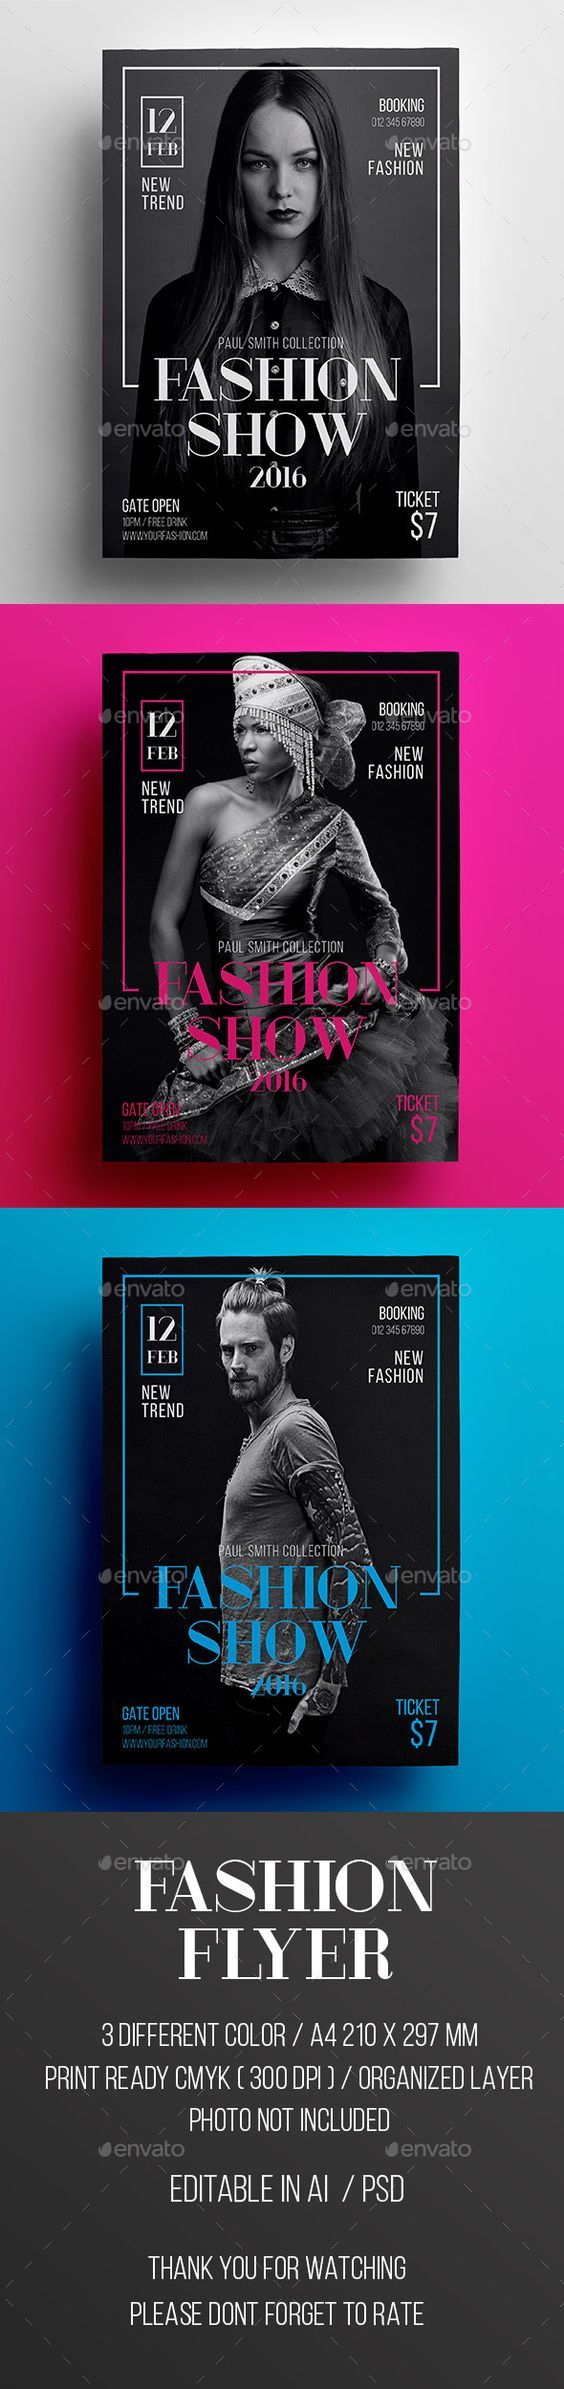 Fashion Show Flyer Template Psd Vector Ai Design Download Http